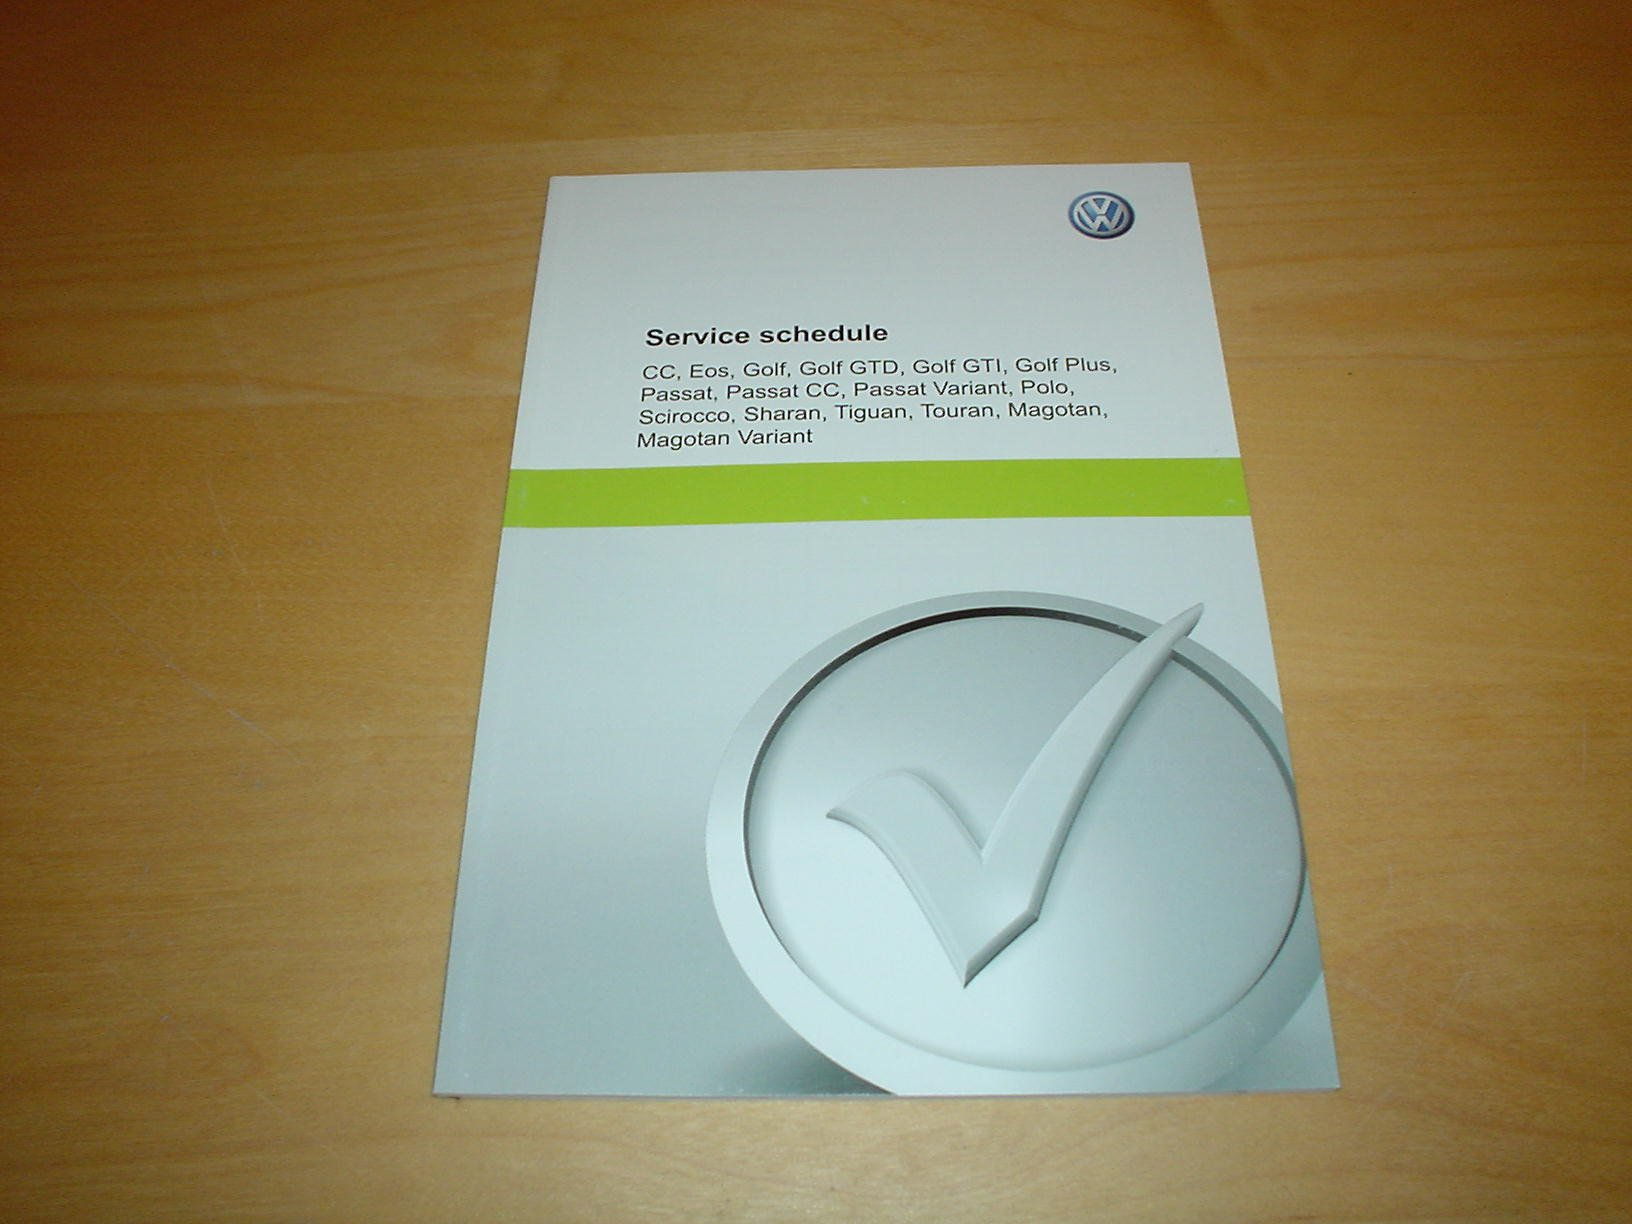 GENUINE NEW BLANK VOLKSWAGEN VW SERVICE BOOK COVERS ALL MODELS NOT DUPLICATE .